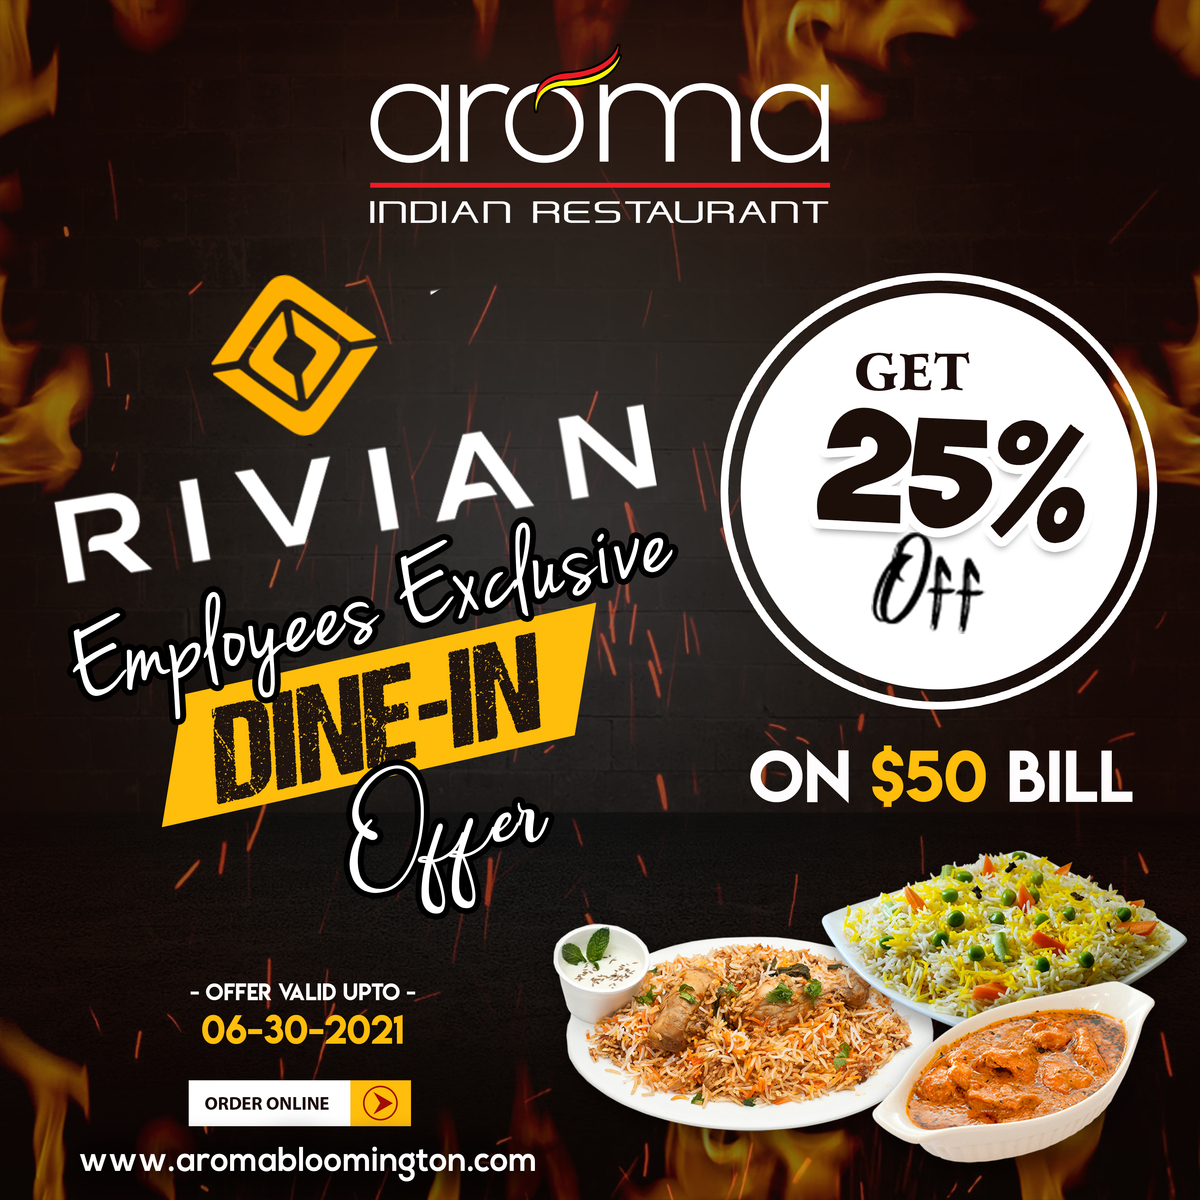 RIVIAN employees exclusive DINE IN Offer